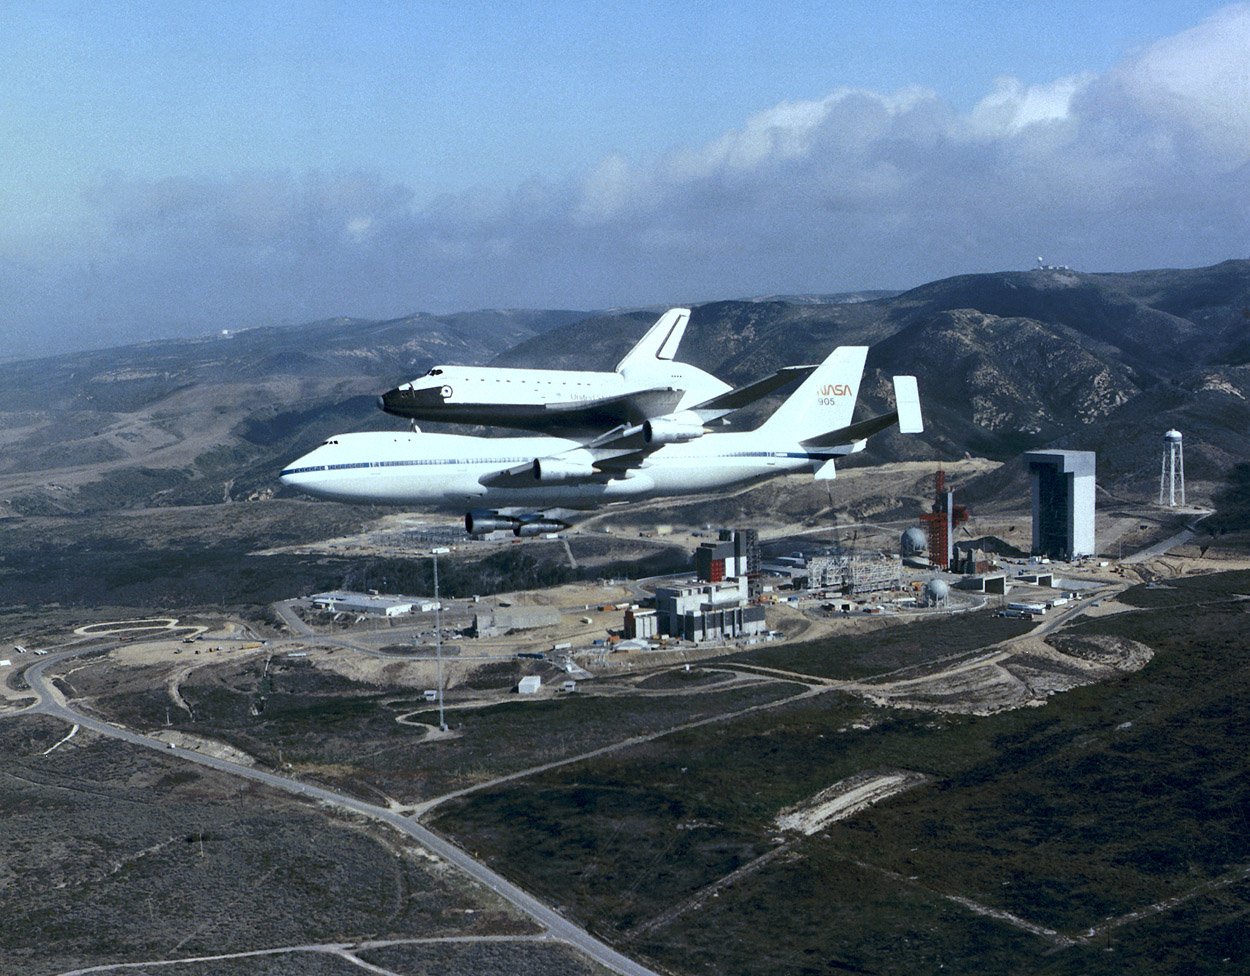 Space Shuttle Discovery, atop Shuttle Carrier Aircraft 905, flies over Vandenberg Air Force Base Space Launch Complex 6 during November 1984